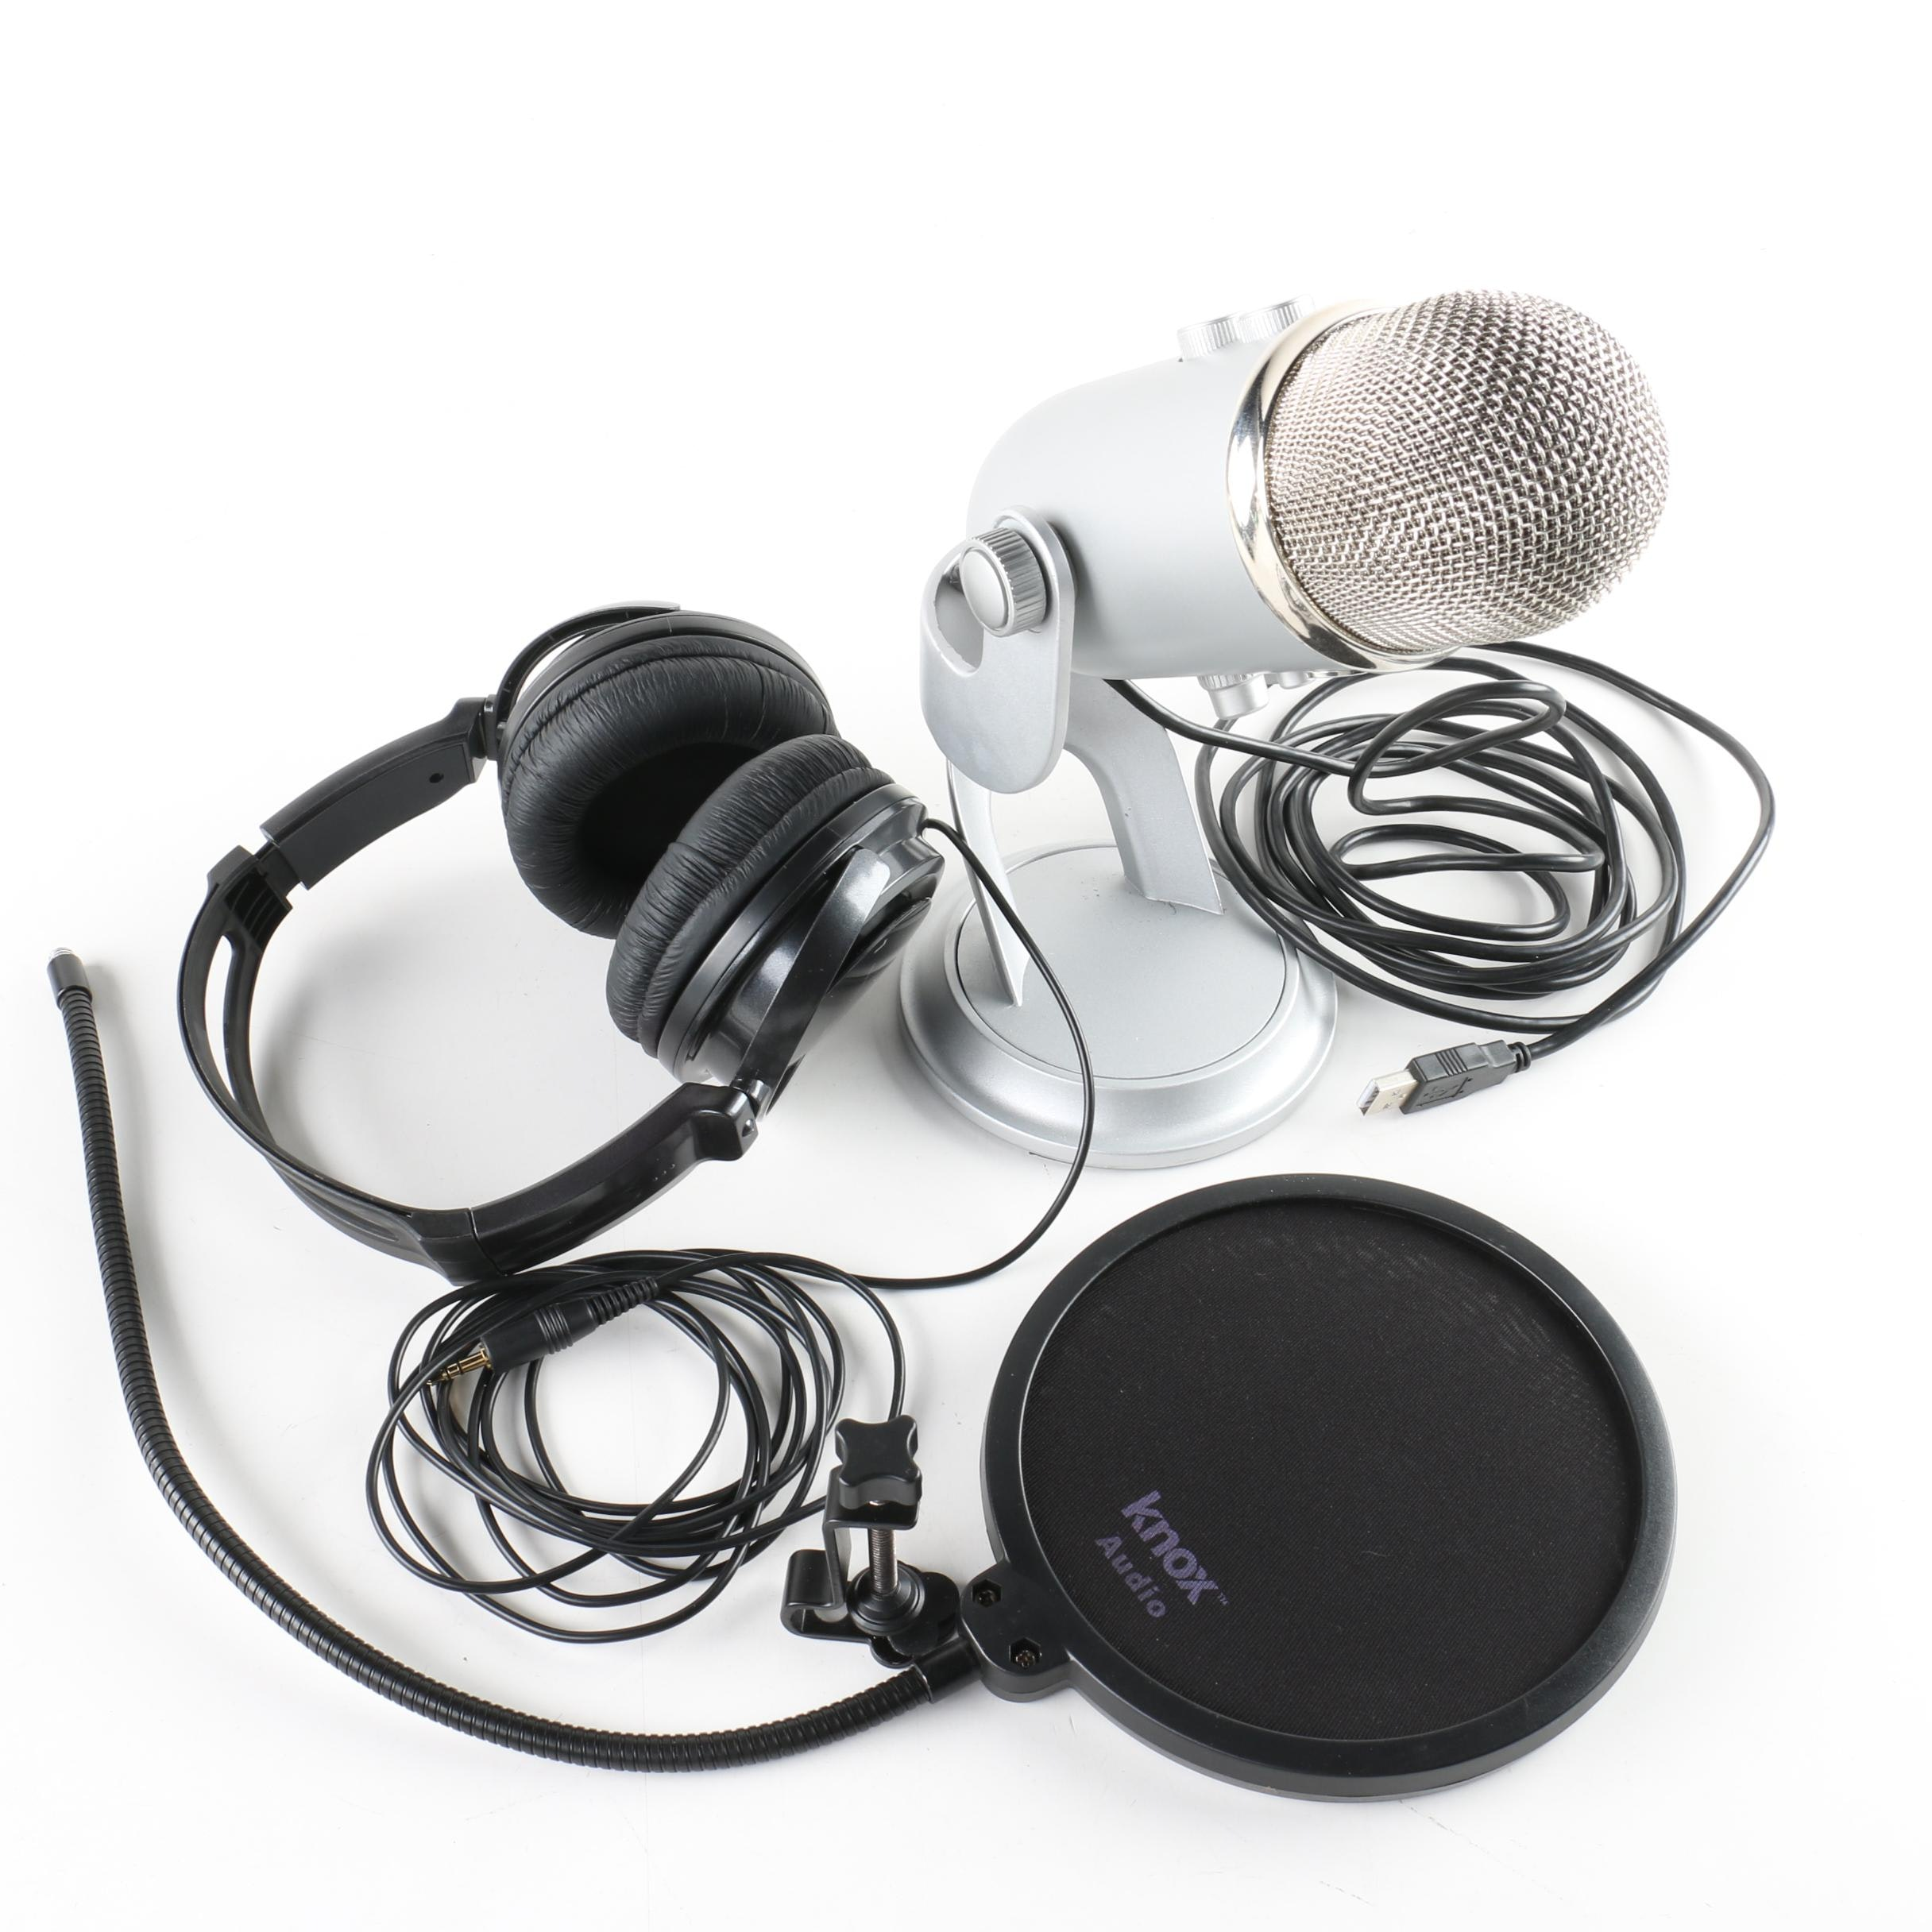 Blue Yeti USB Condenser Microphone with Knox Audio Pop Filter and Headphones